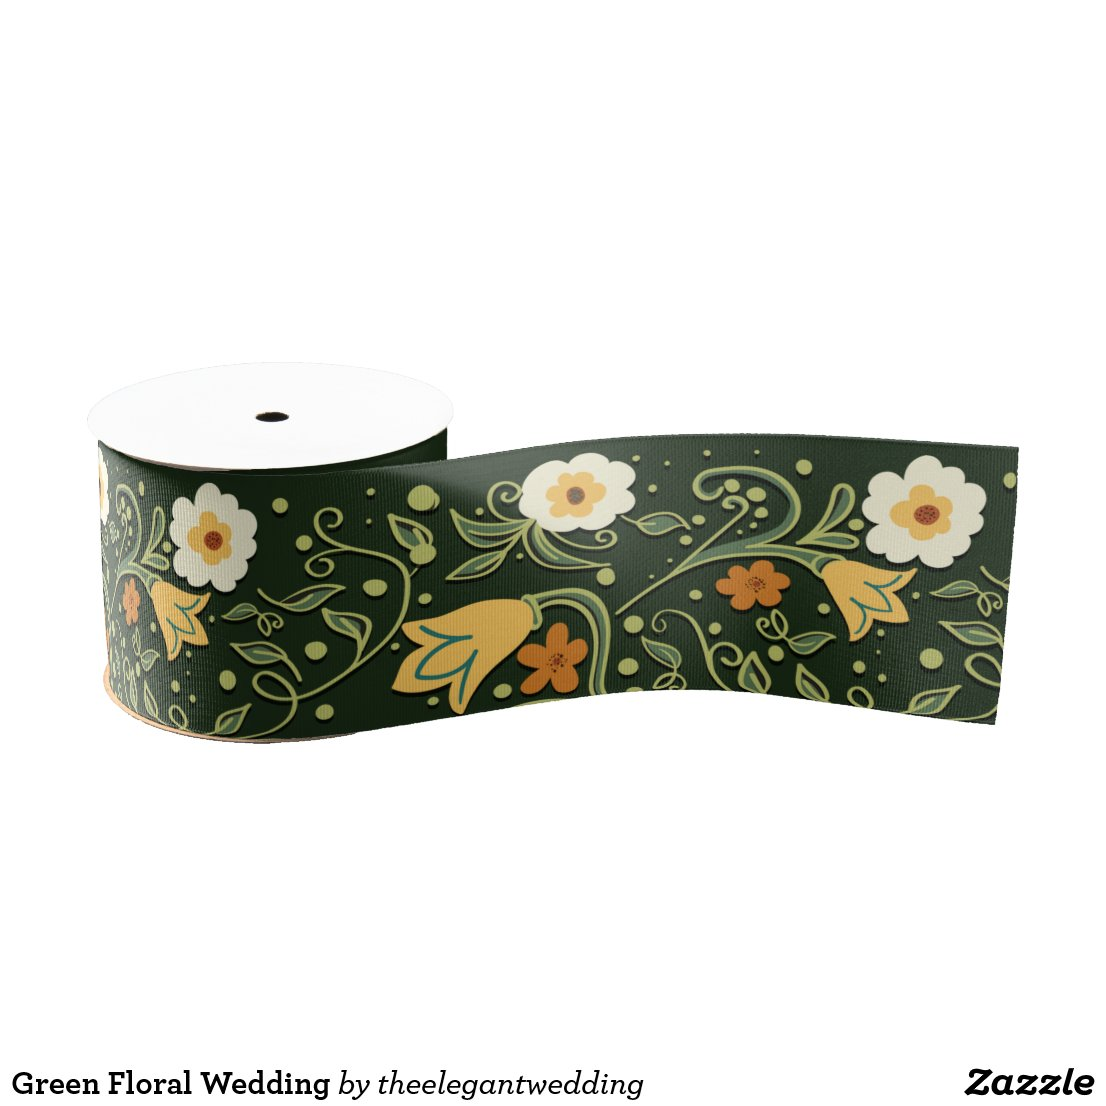 Green Floral Wedding Grosgrain Ribbon